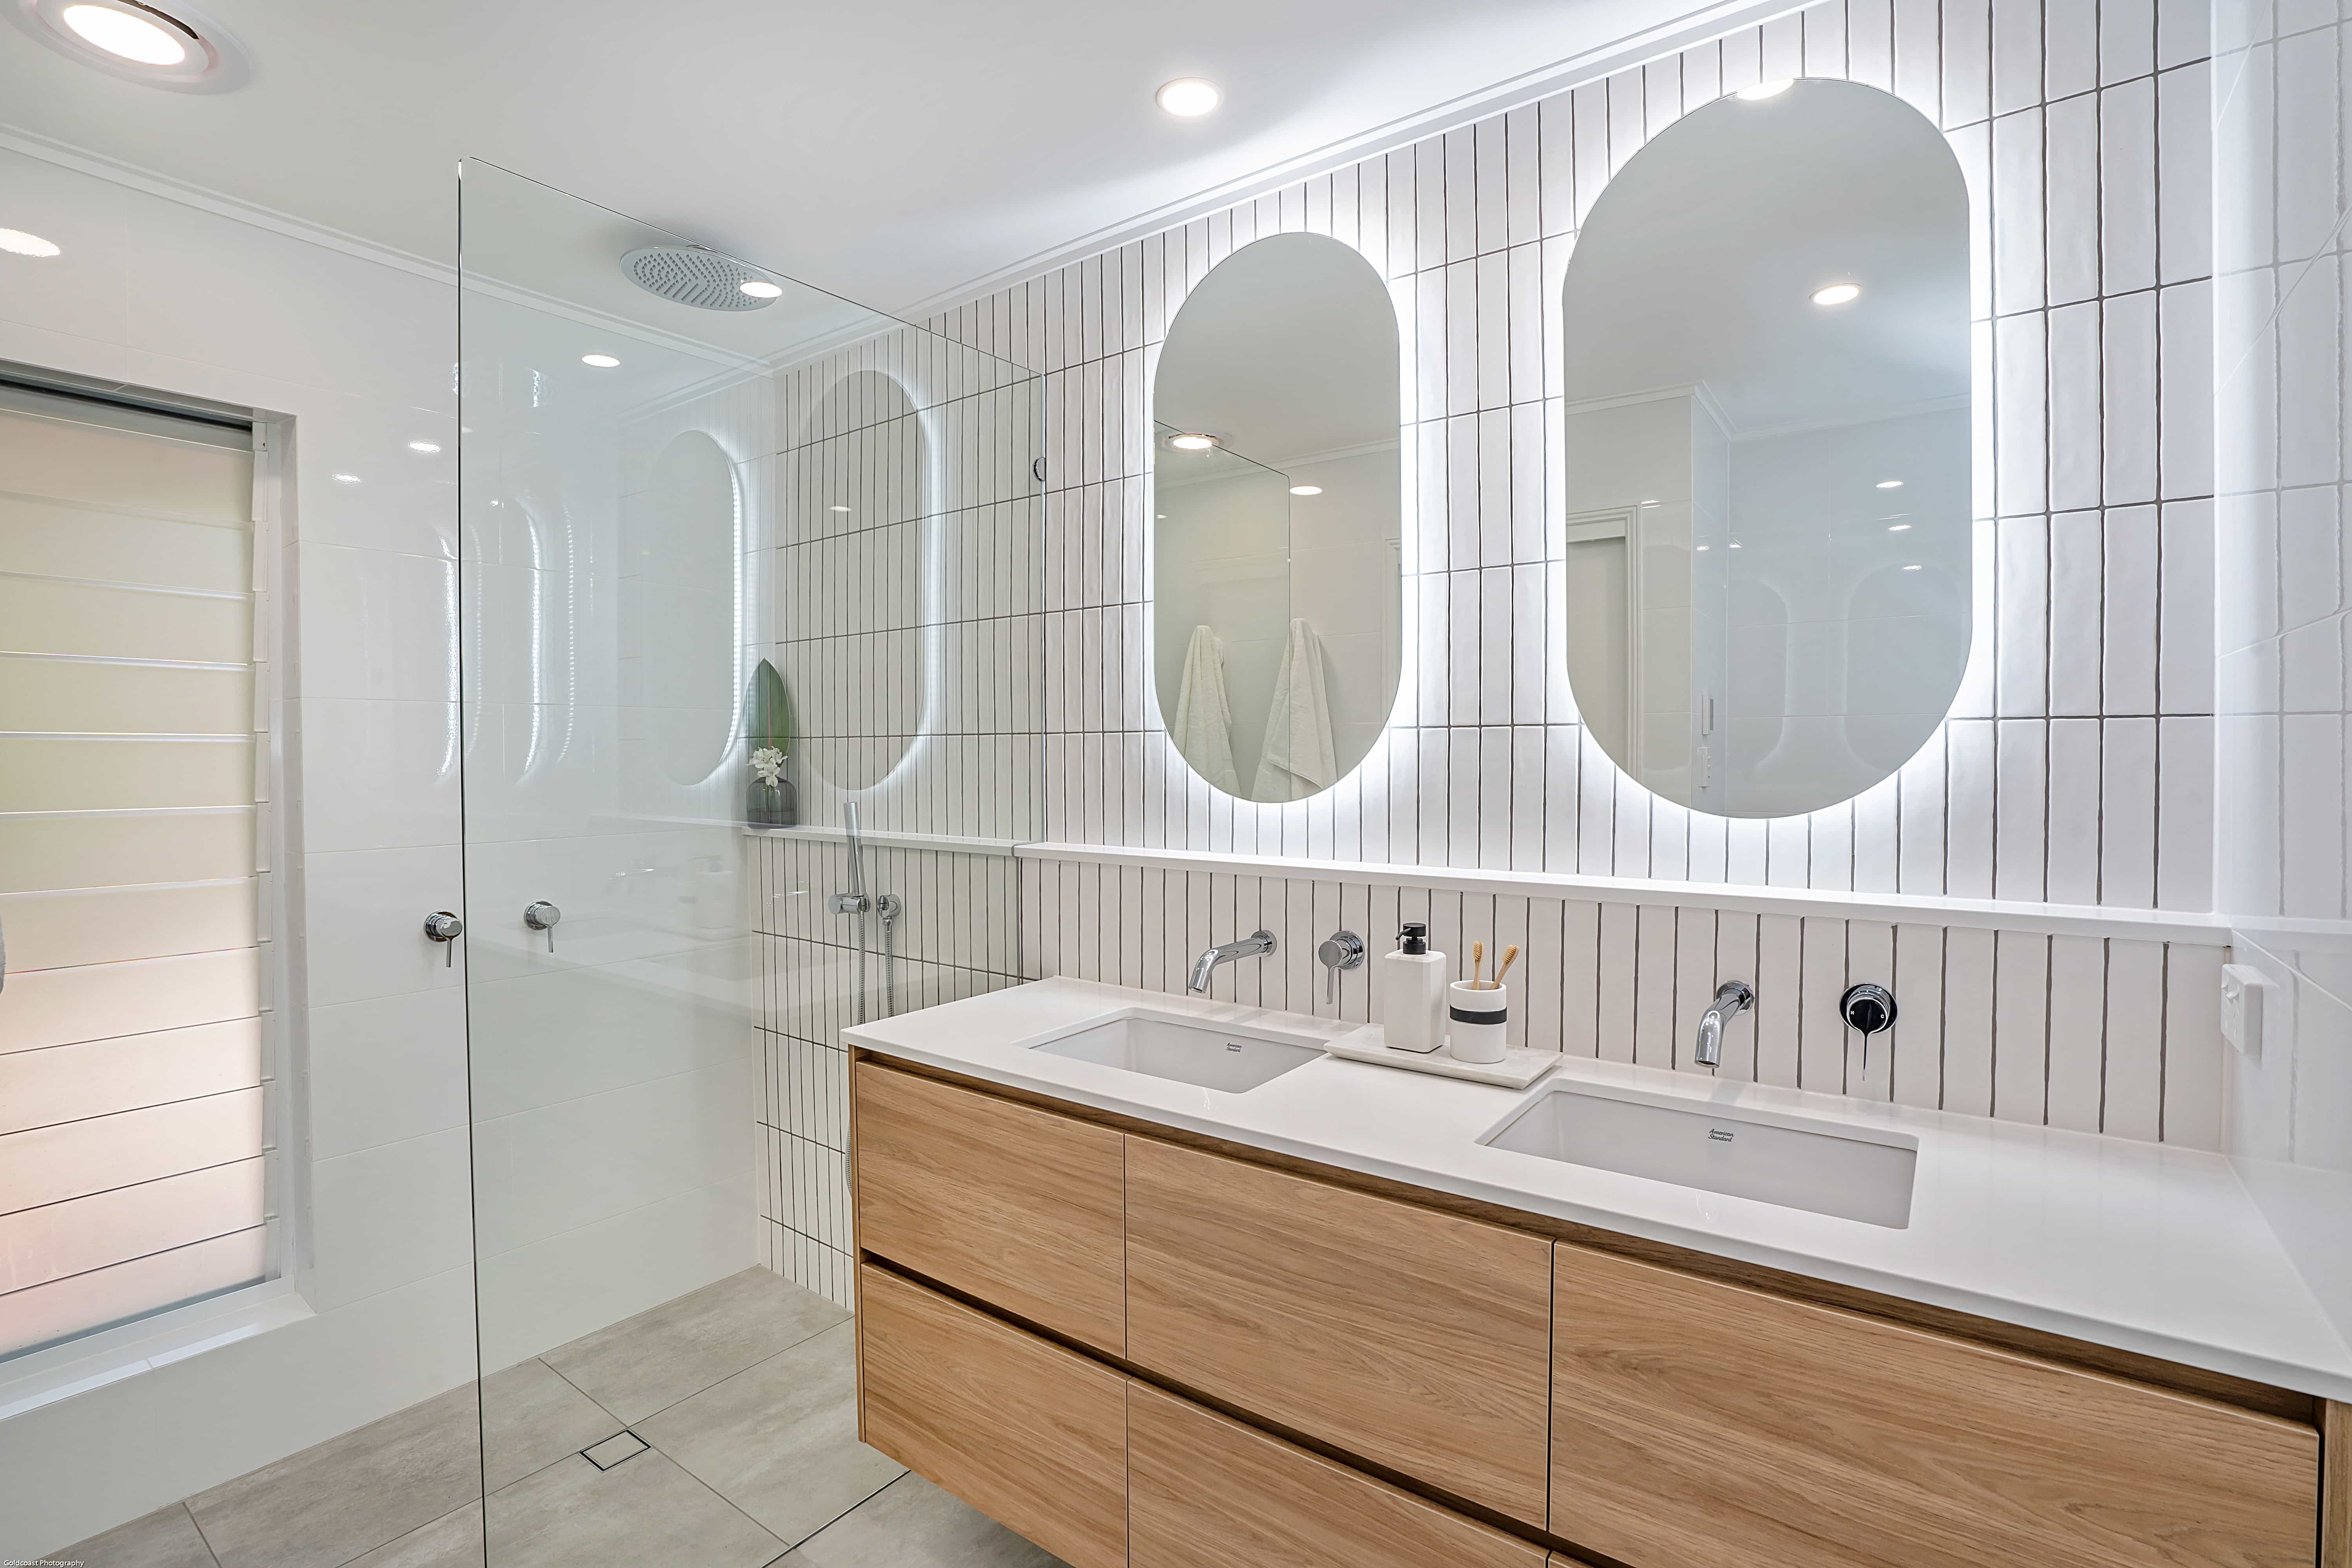 How much value does a bathroom renovation add?